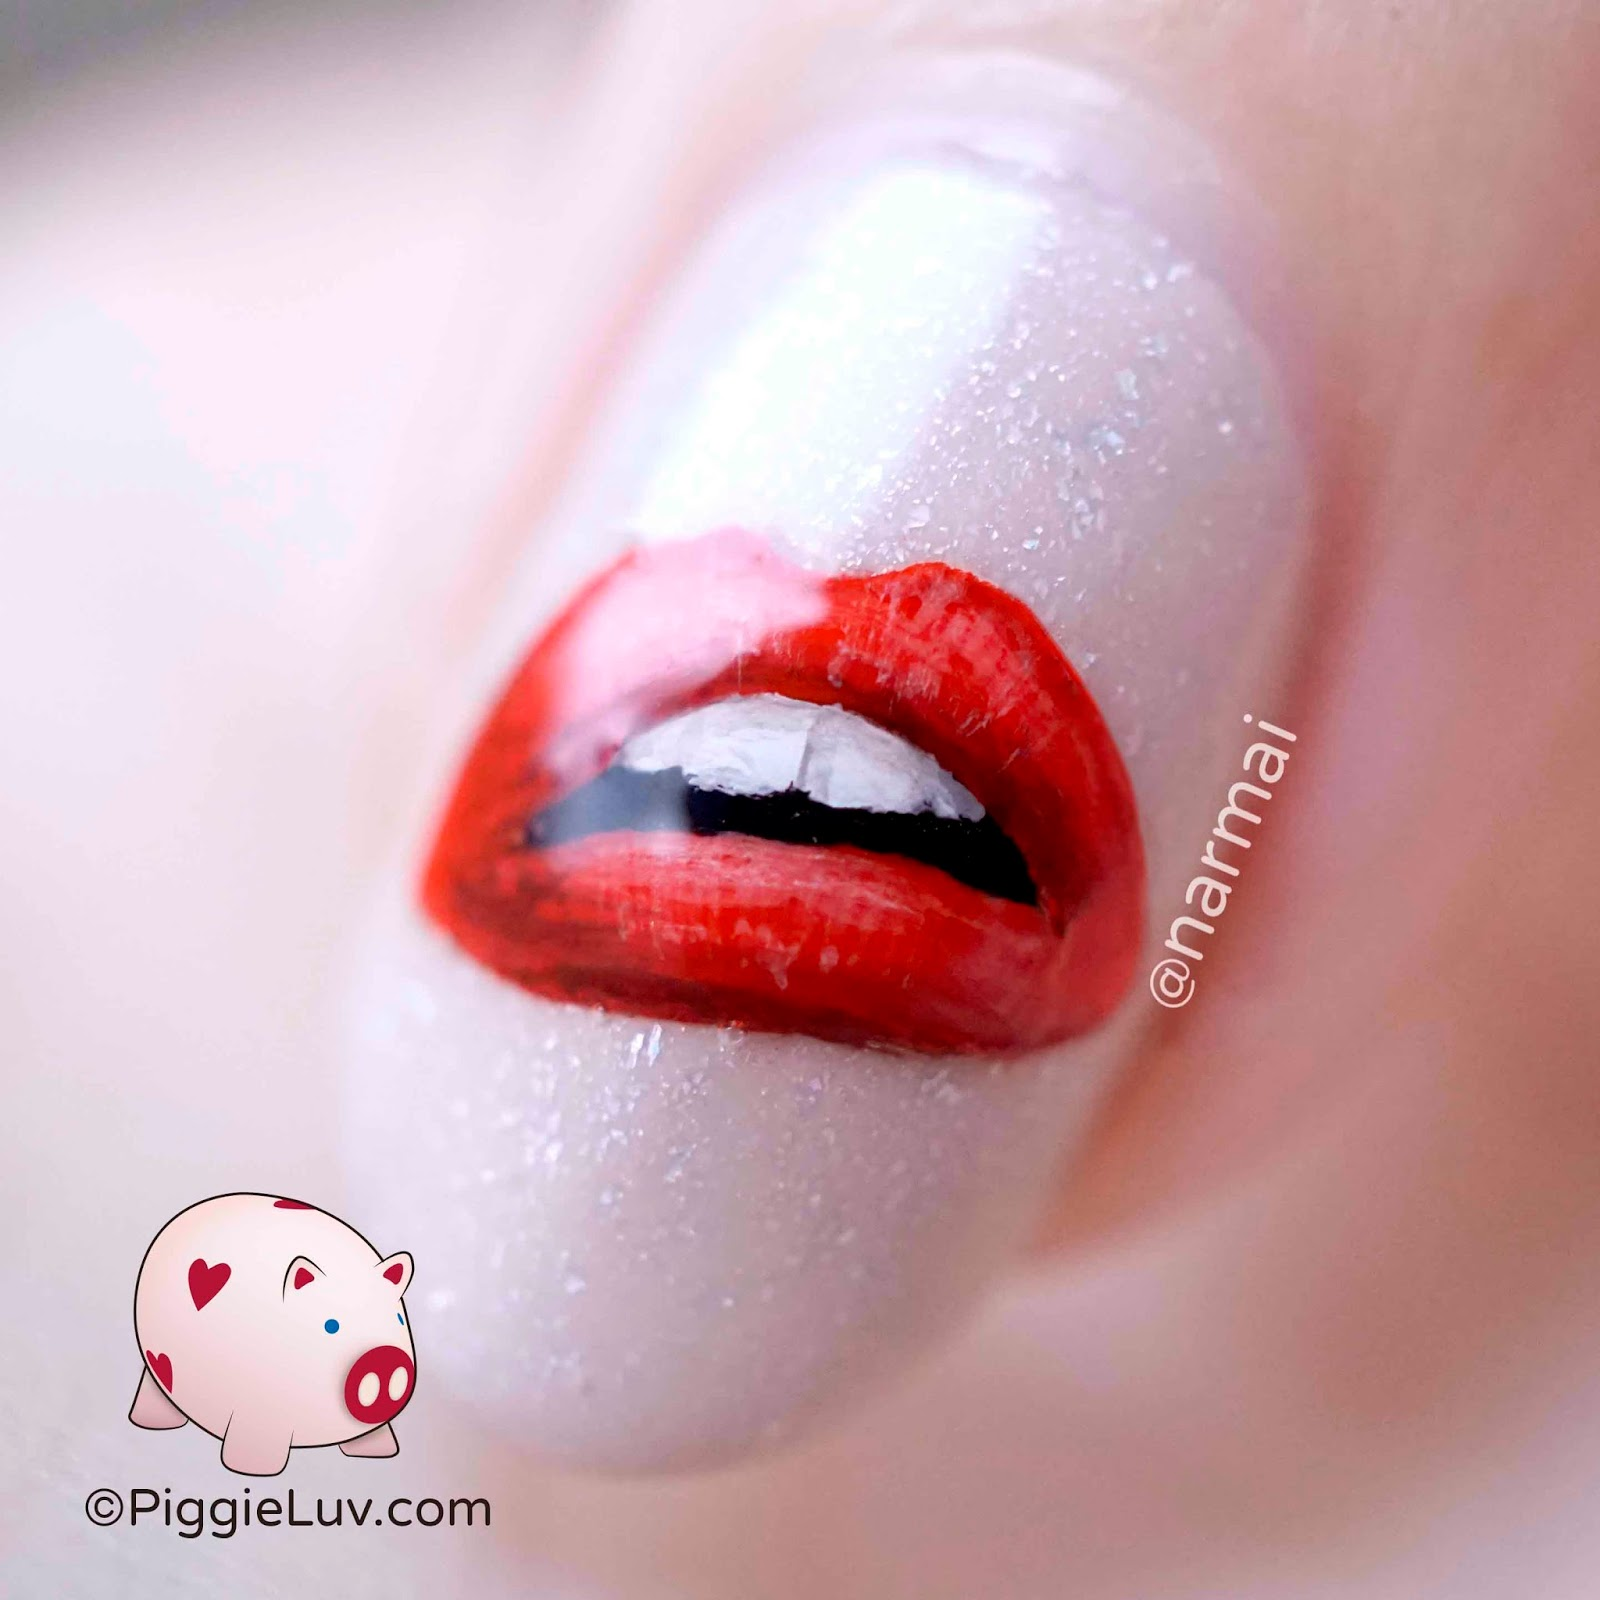 Piggieluv hot lips nail art for valentines day i used ilnp stopping traffic that i got from nailland hungary on all the nails and picture polish cherish on the accent nail the lips are painted with prinsesfo Choice Image